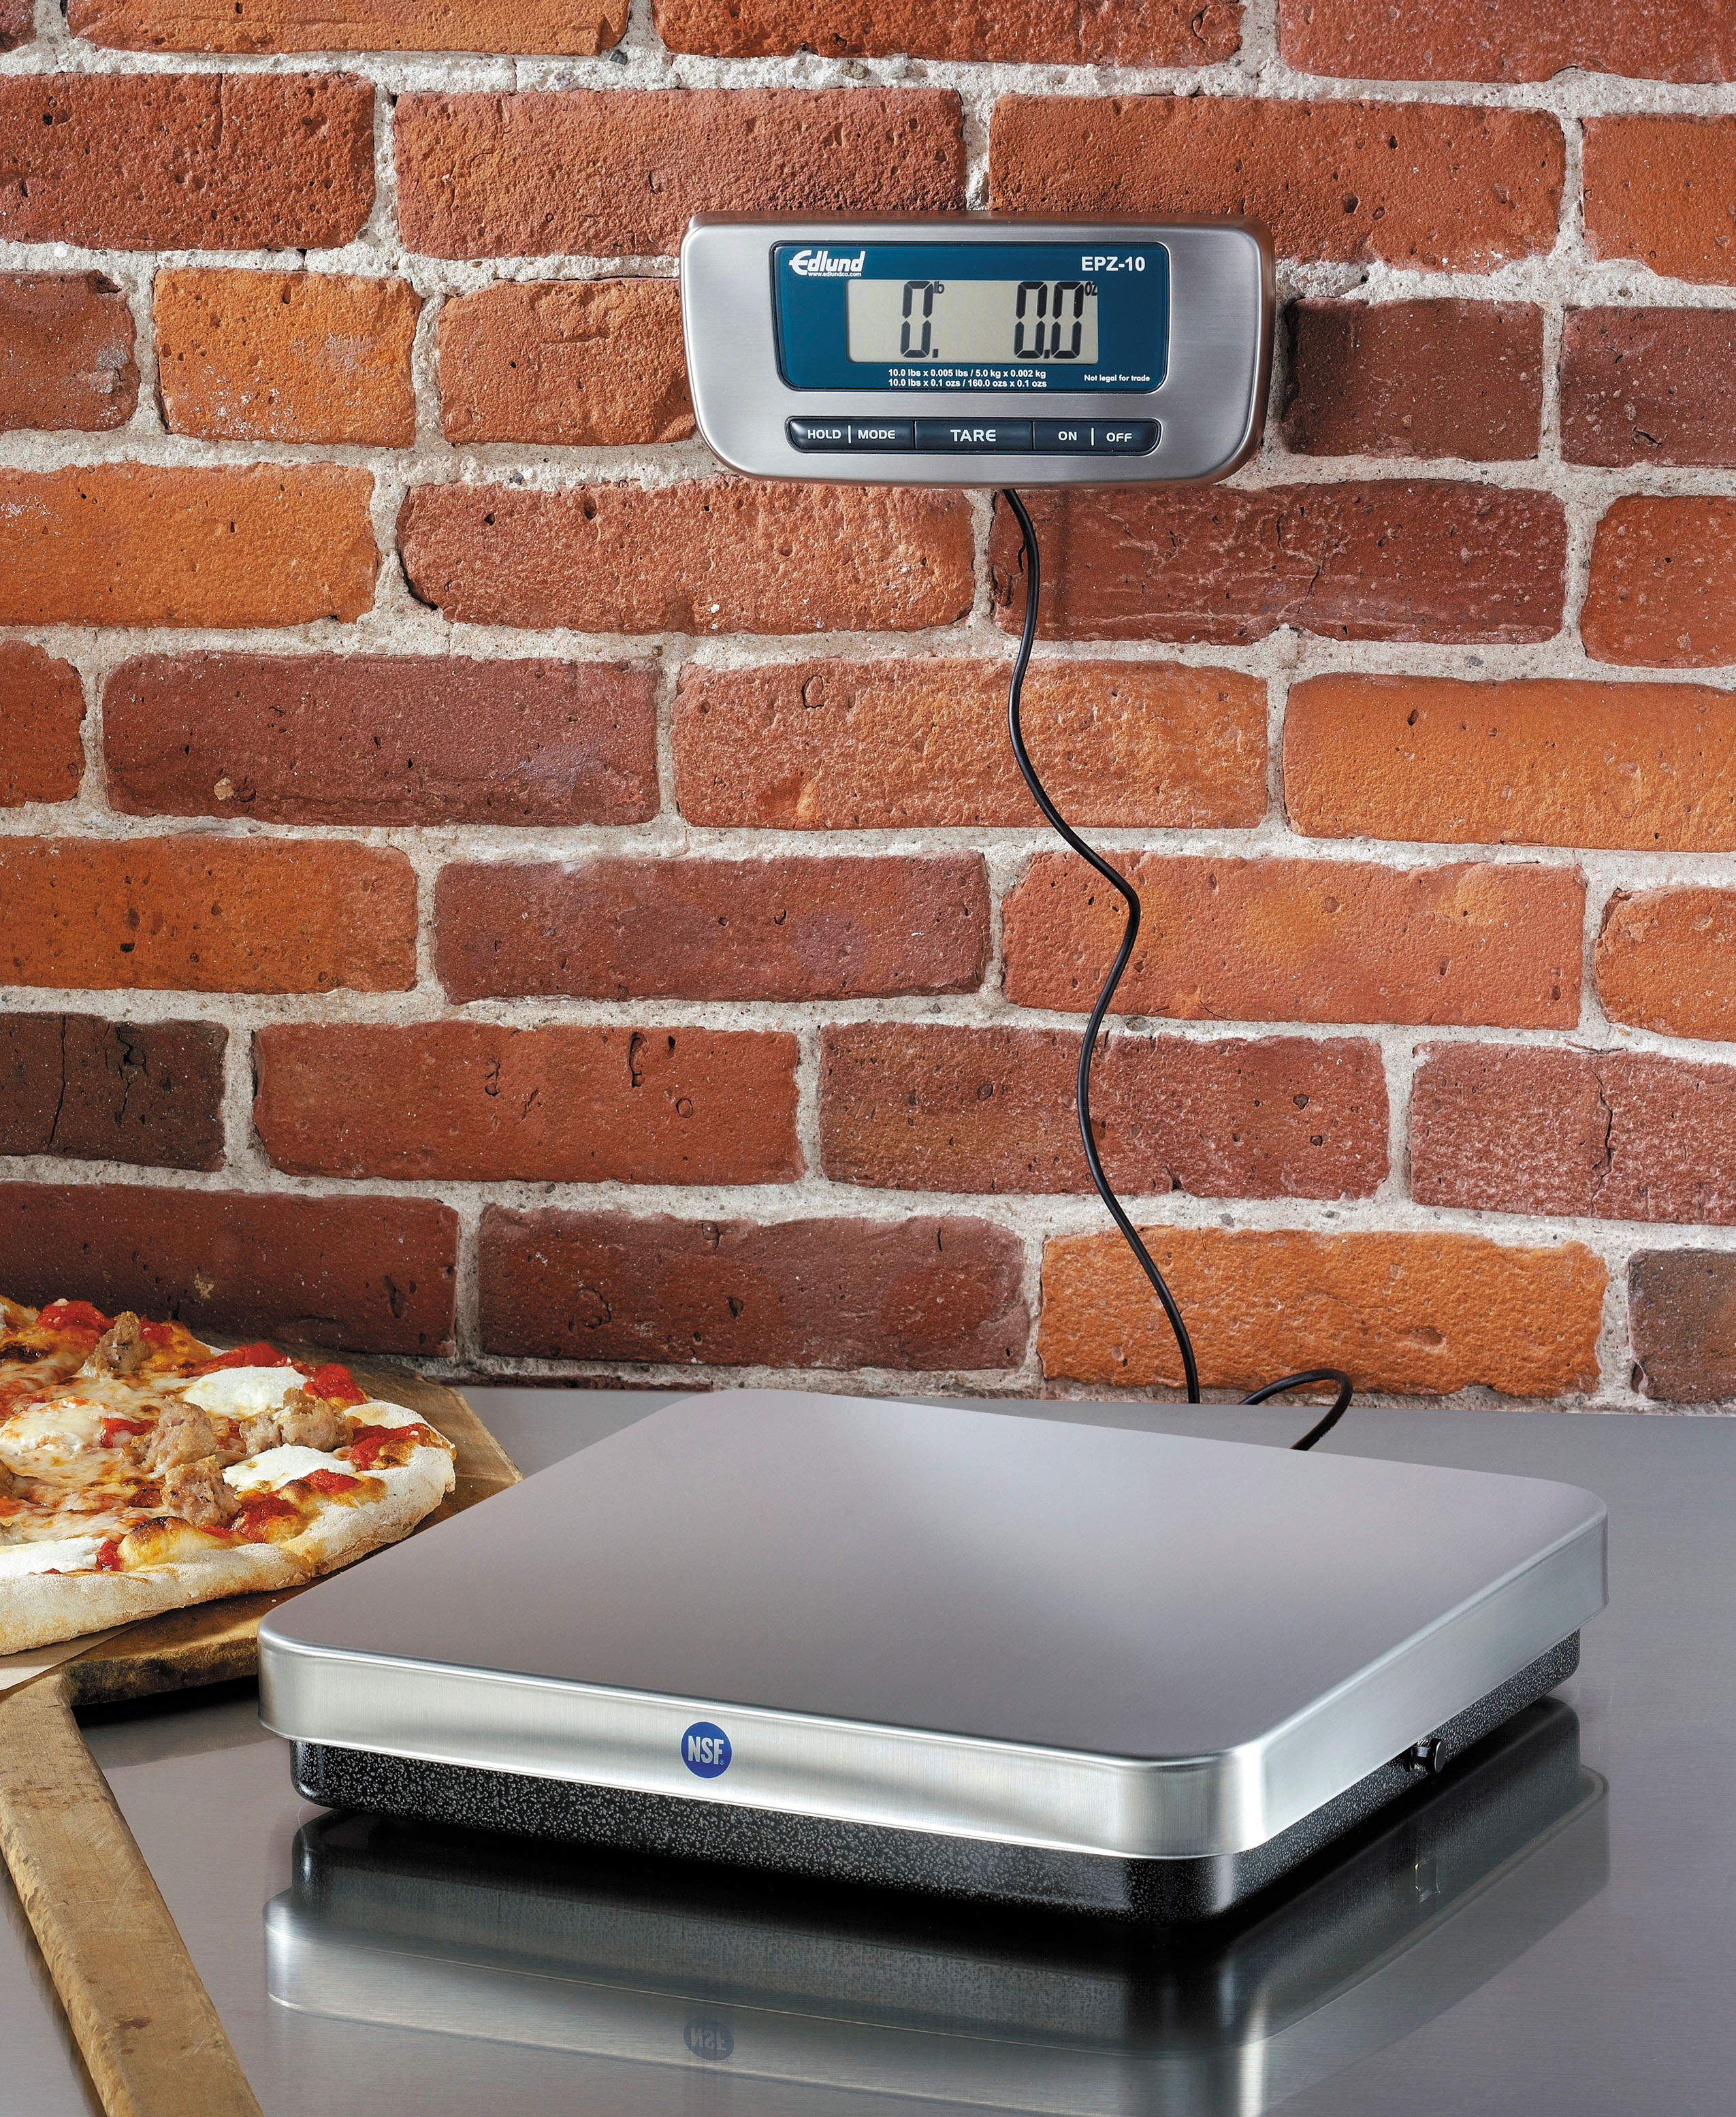 Edlund 10 Lb Digital Pizza Scale W/ Foot Switch Tare